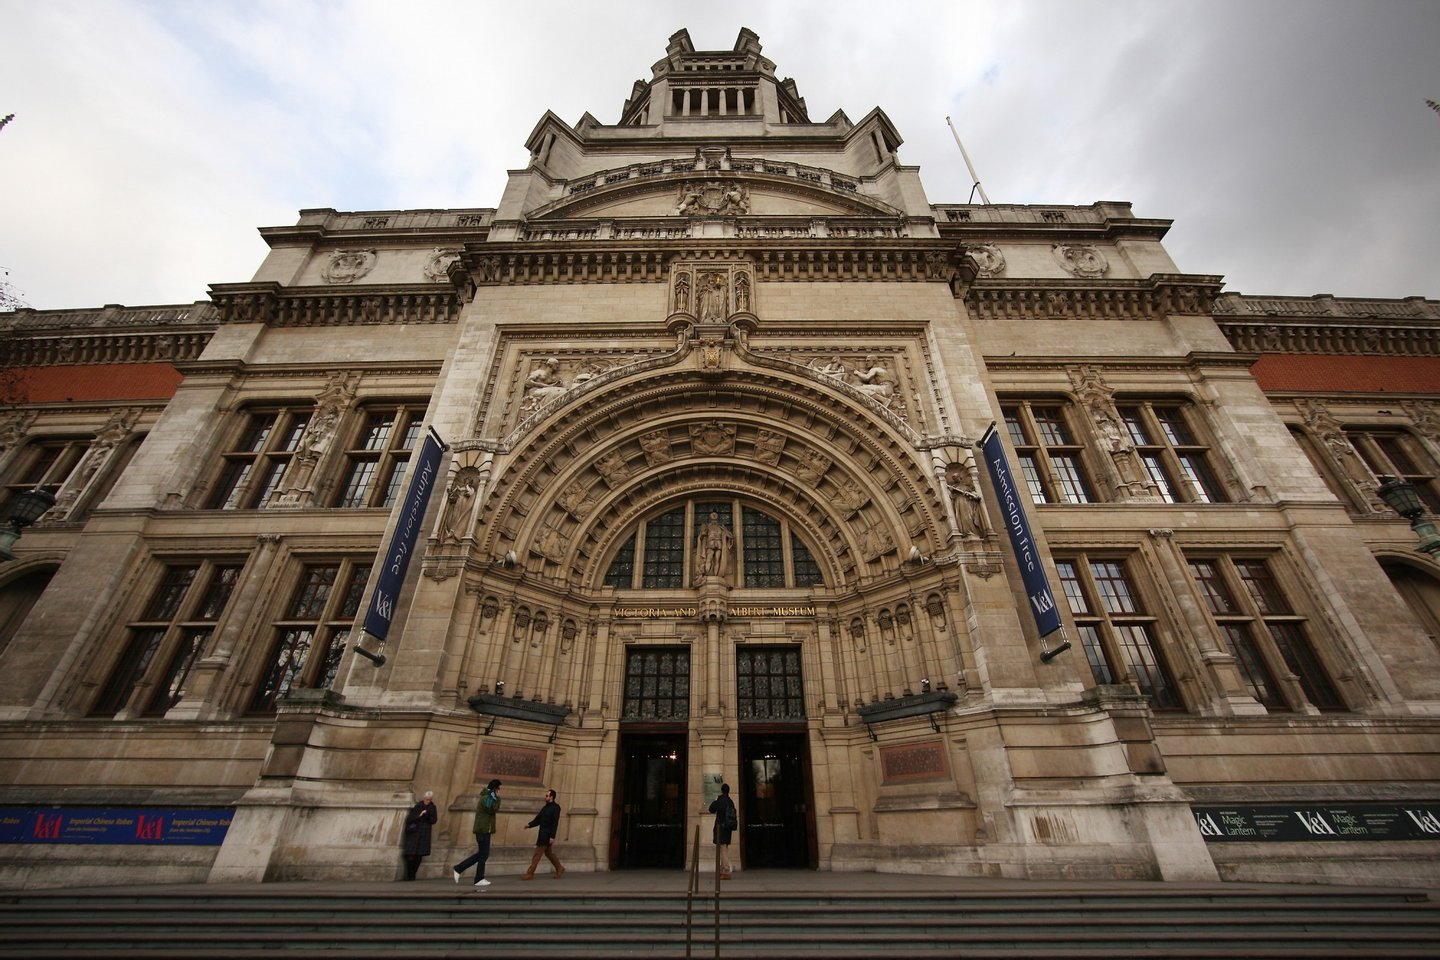 LONDON, ENGLAND - FEBRUARY 16: The Victoria & Albert Museum on 16, February 2011 in London. (Photo by Peter Macdiarmid/Getty Images)